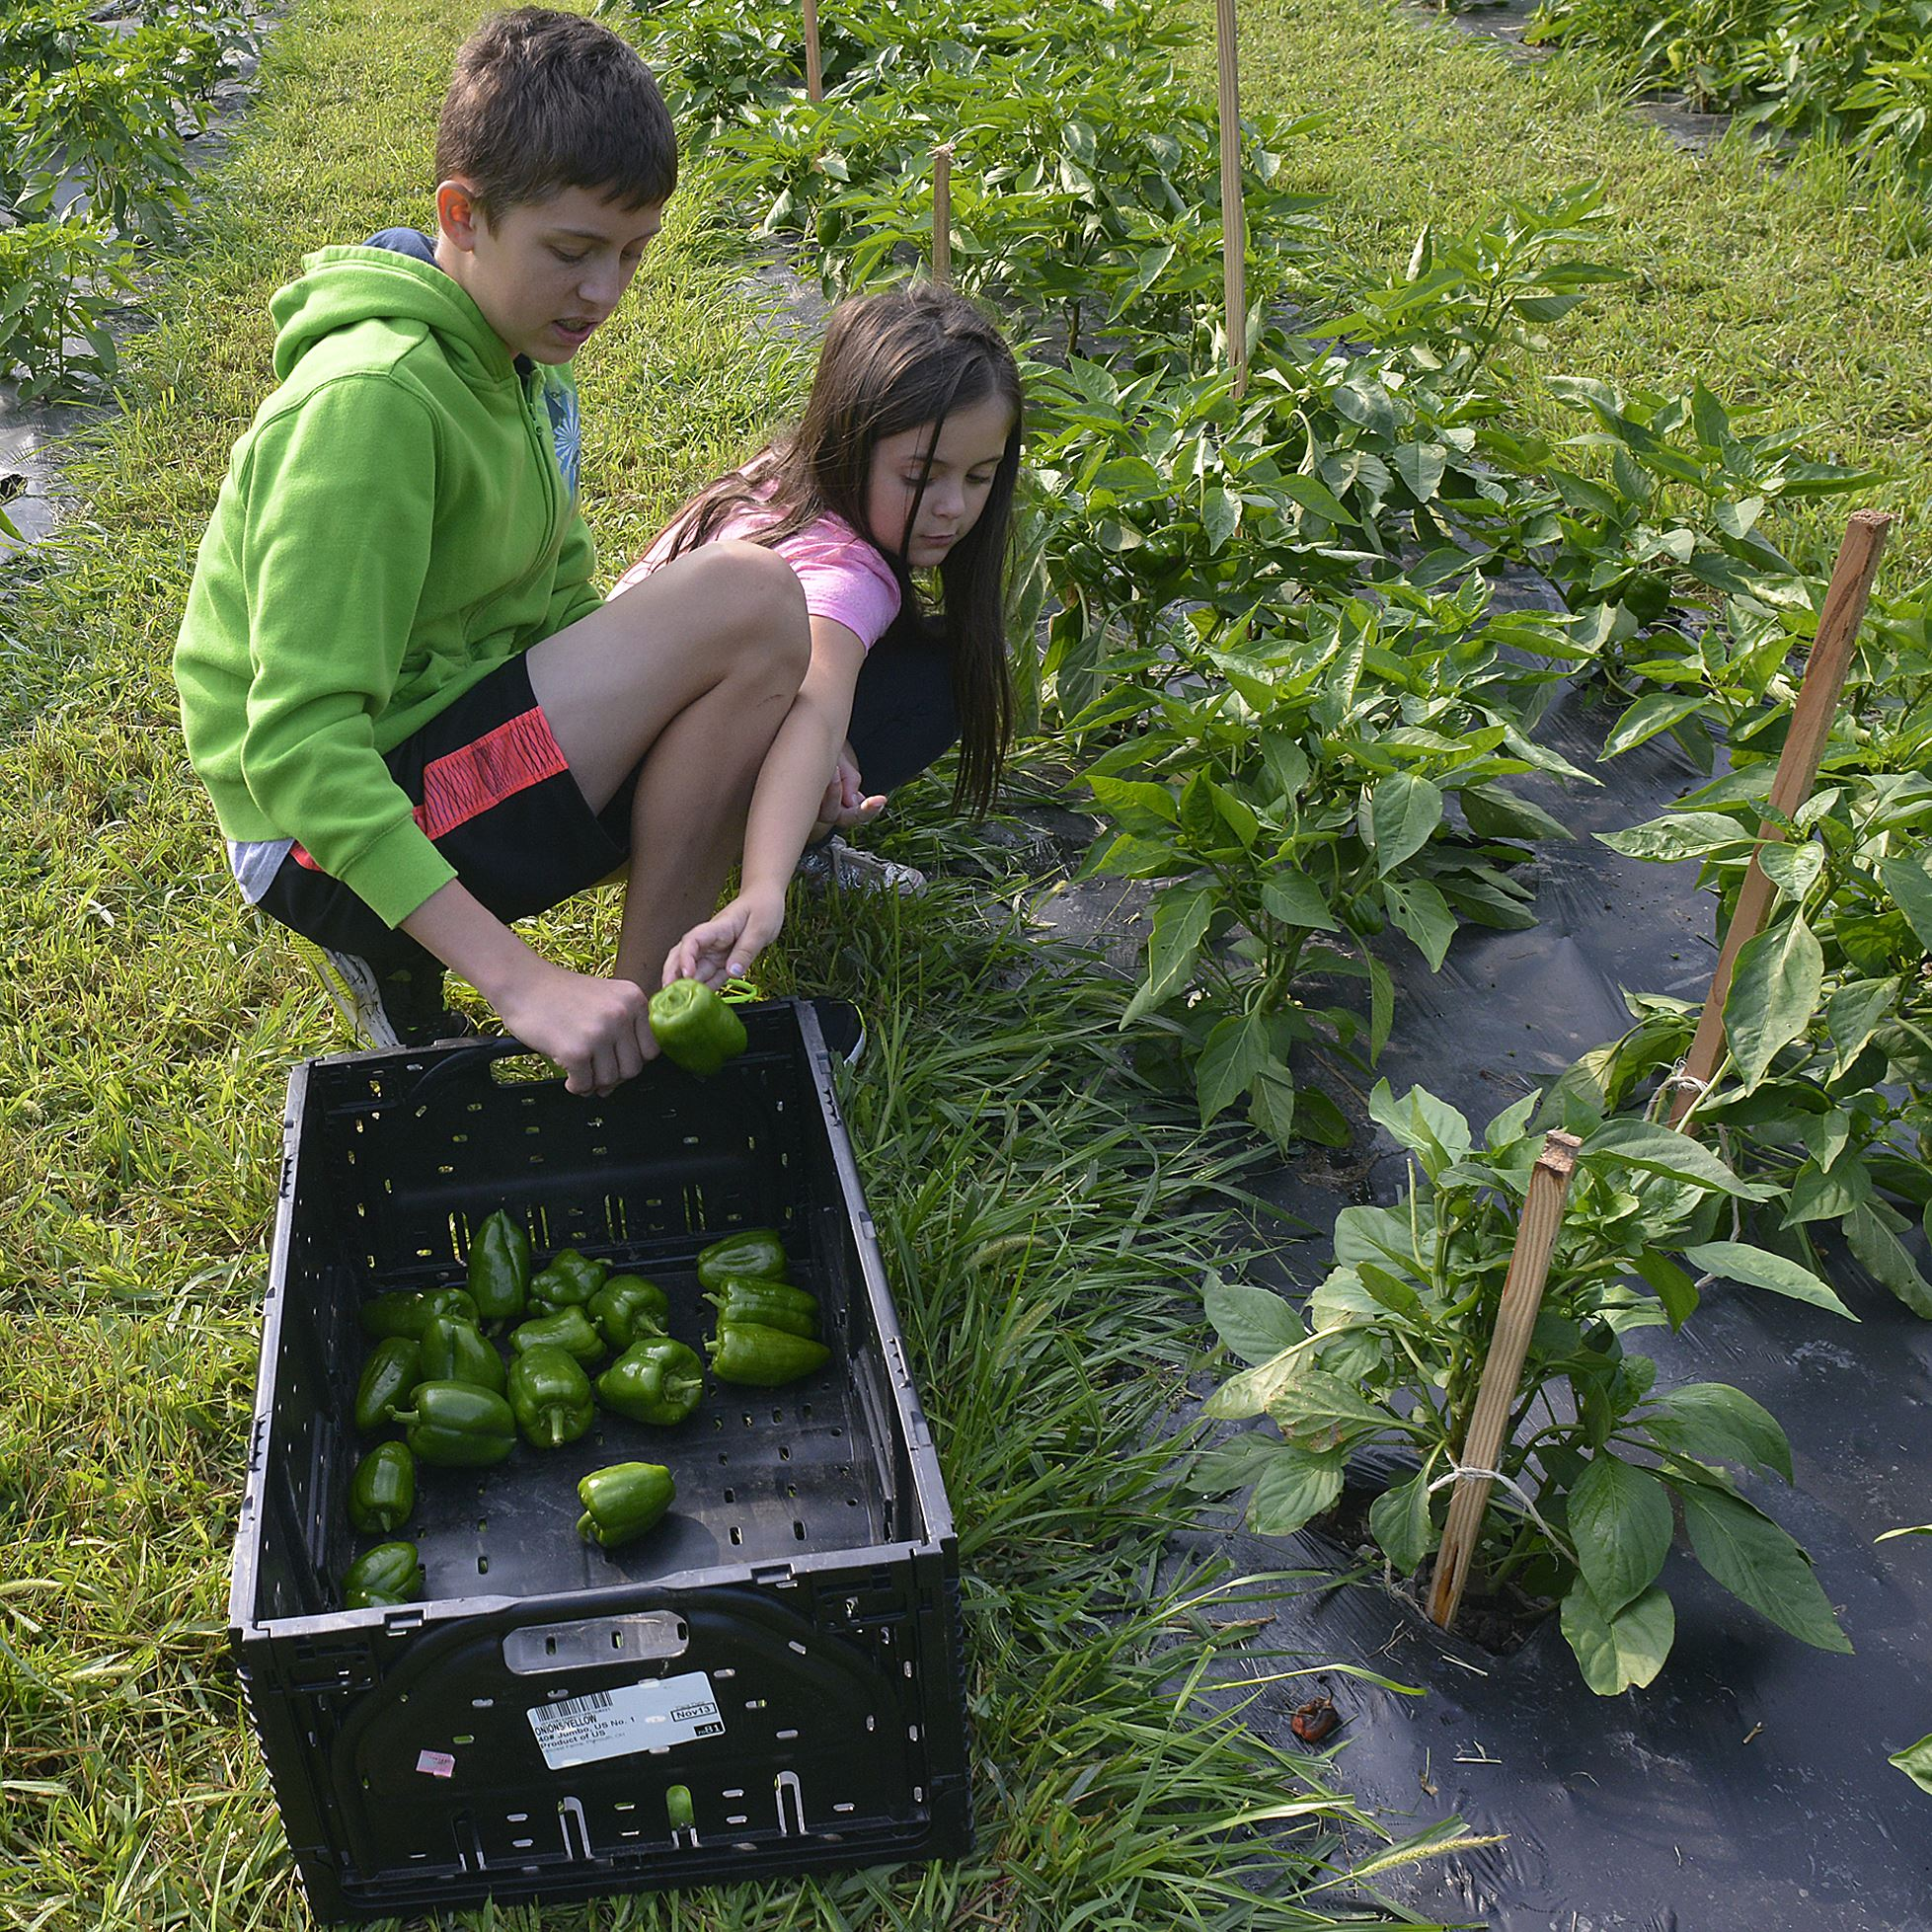 20140731lrfarmfood04-3 Lyndsay Luff, 6, of the North Side, tosses a green pepper into the crate as she and her brother, Brandon Luff, 12, volunteer to pick vegetables in the Common Ground garden.